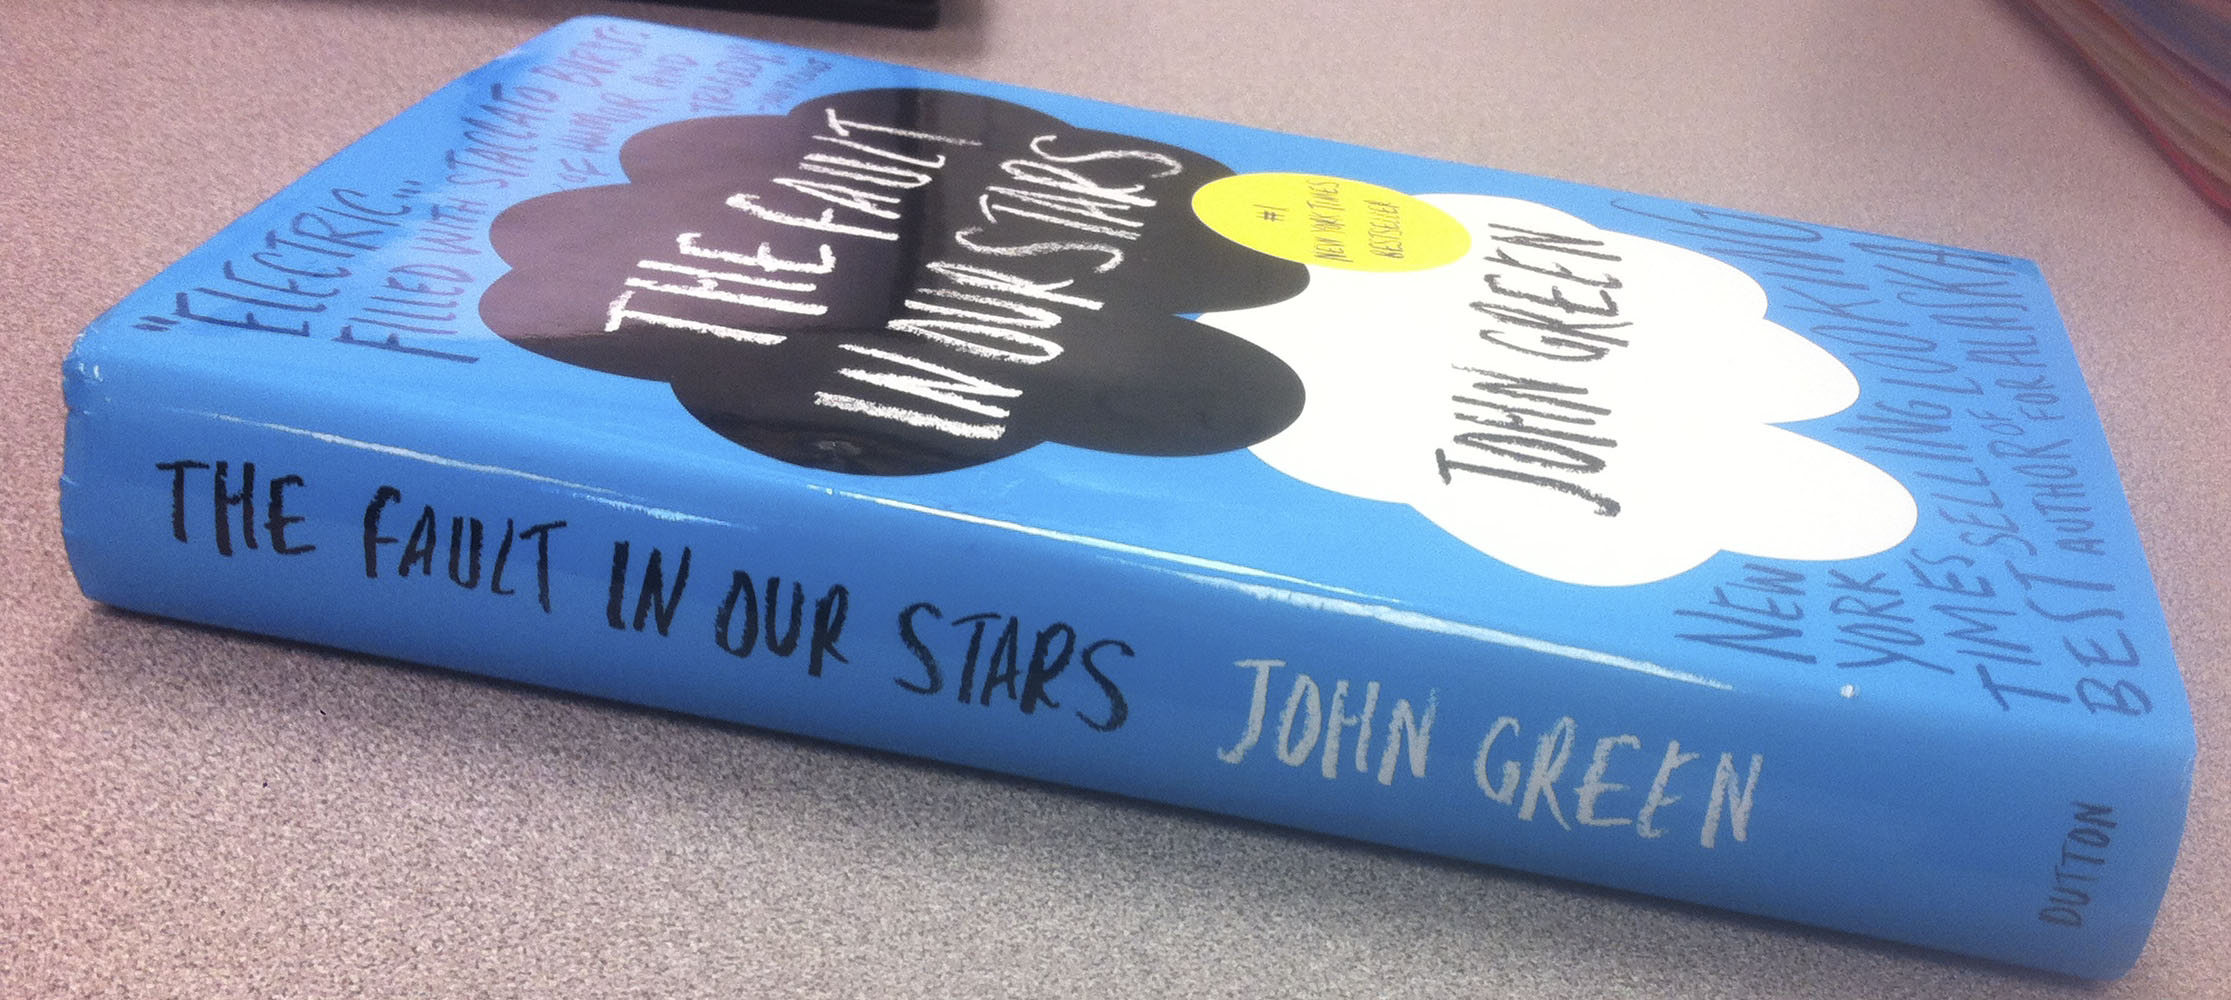 the fault in our stars book review - kennedy